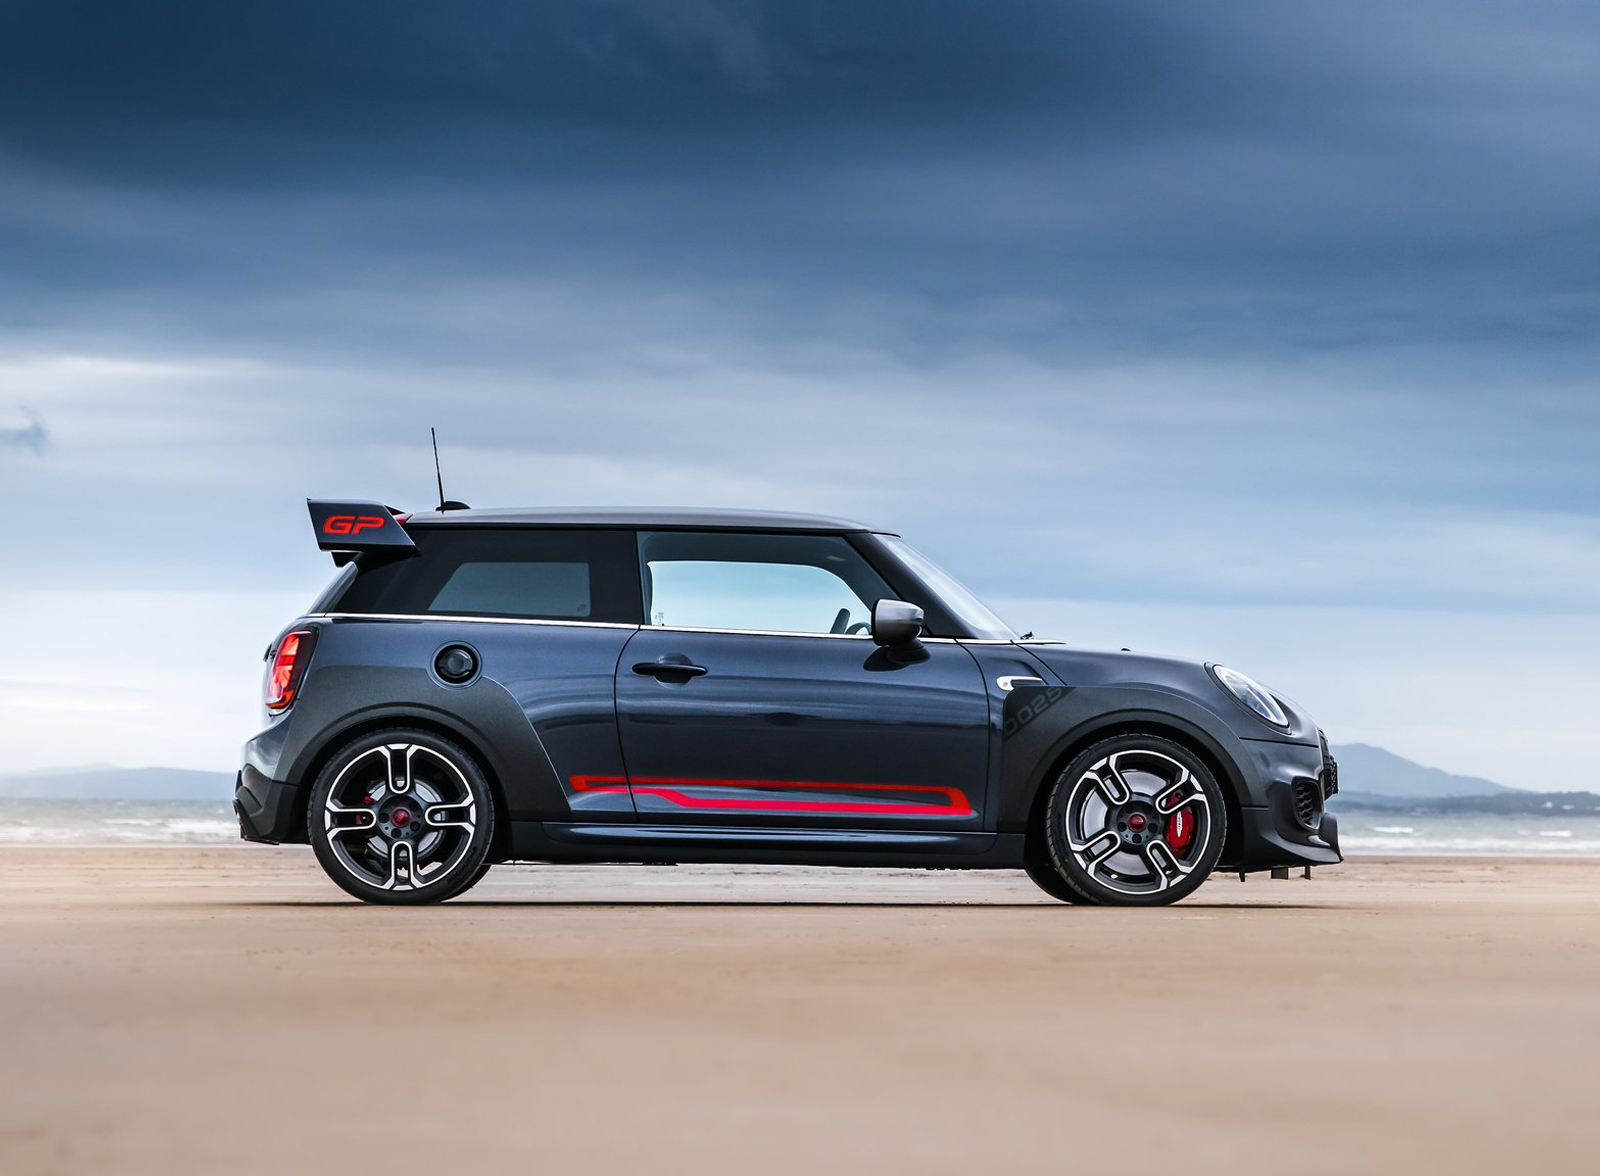 grey car MINI John Cooper with red highlights standing on cloudy beach side view